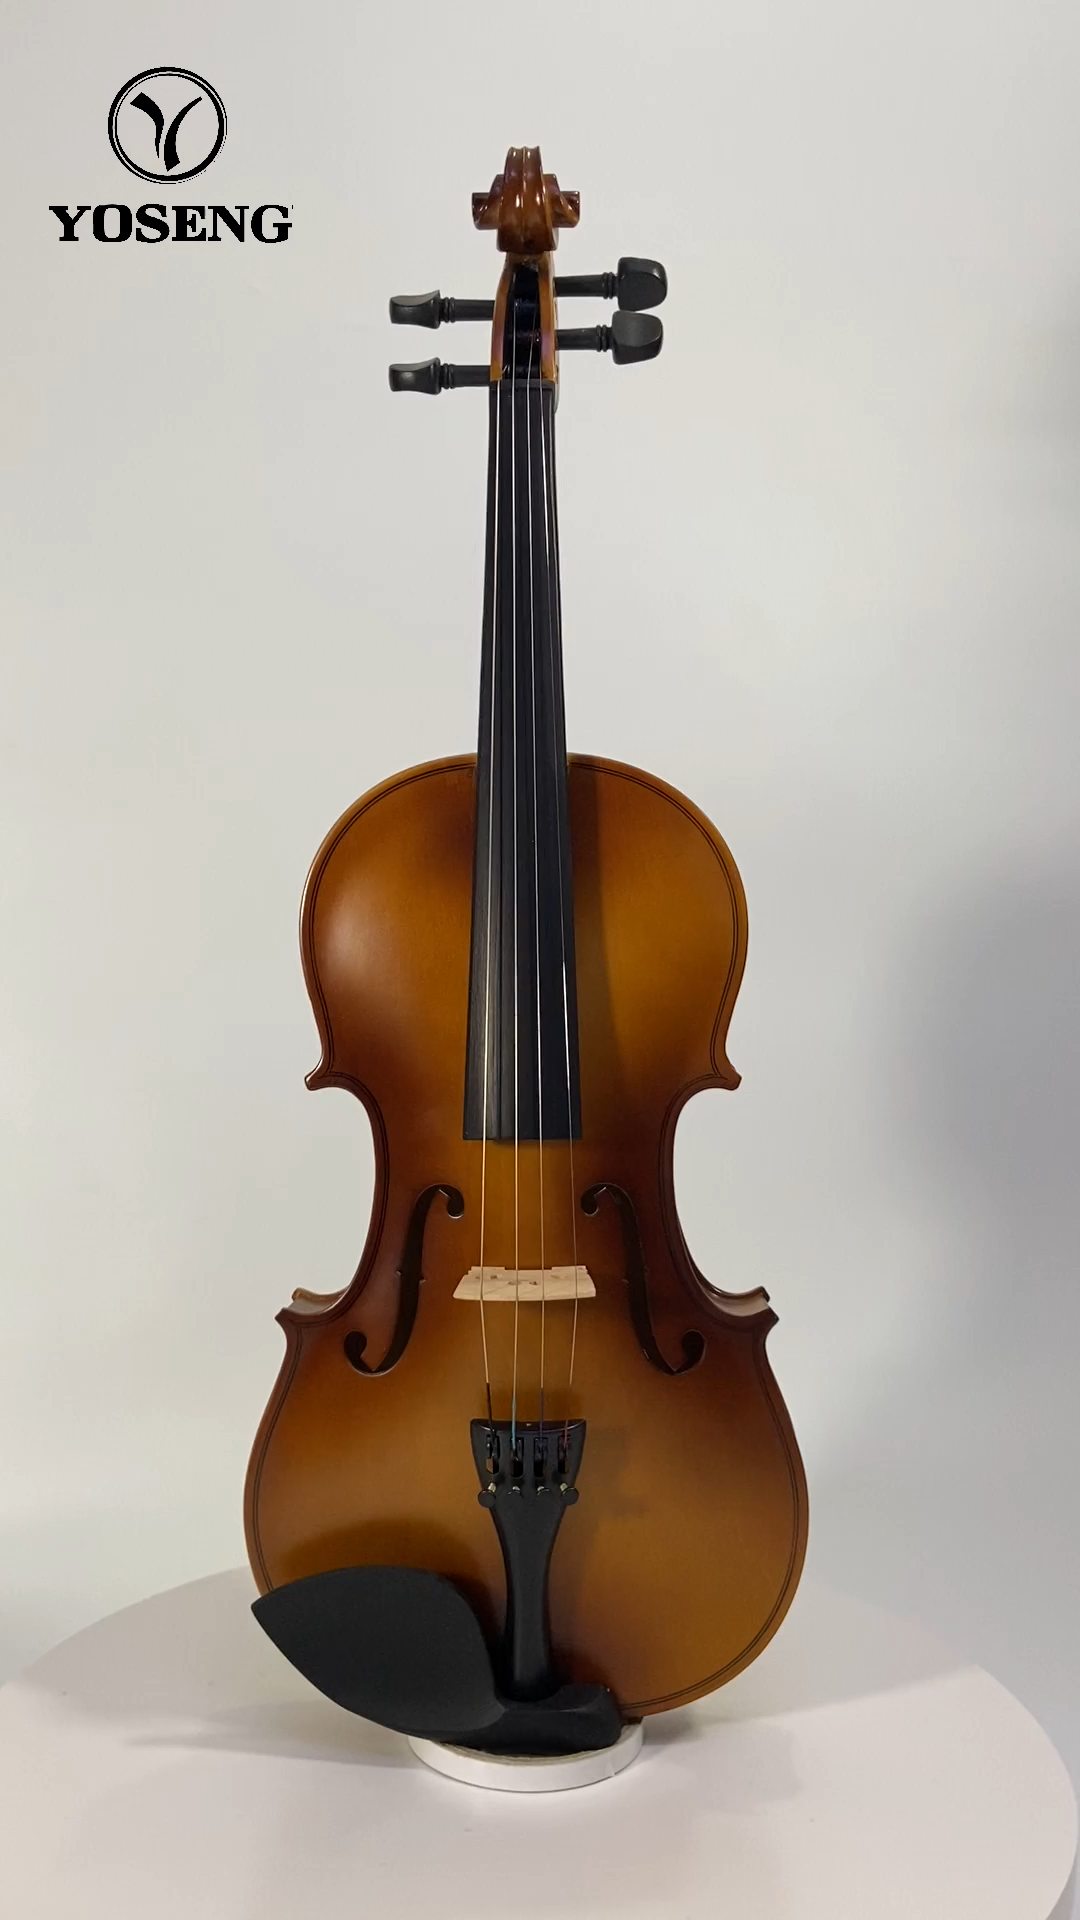 Chinese Factory Cheap Plywood Violins for Beginners